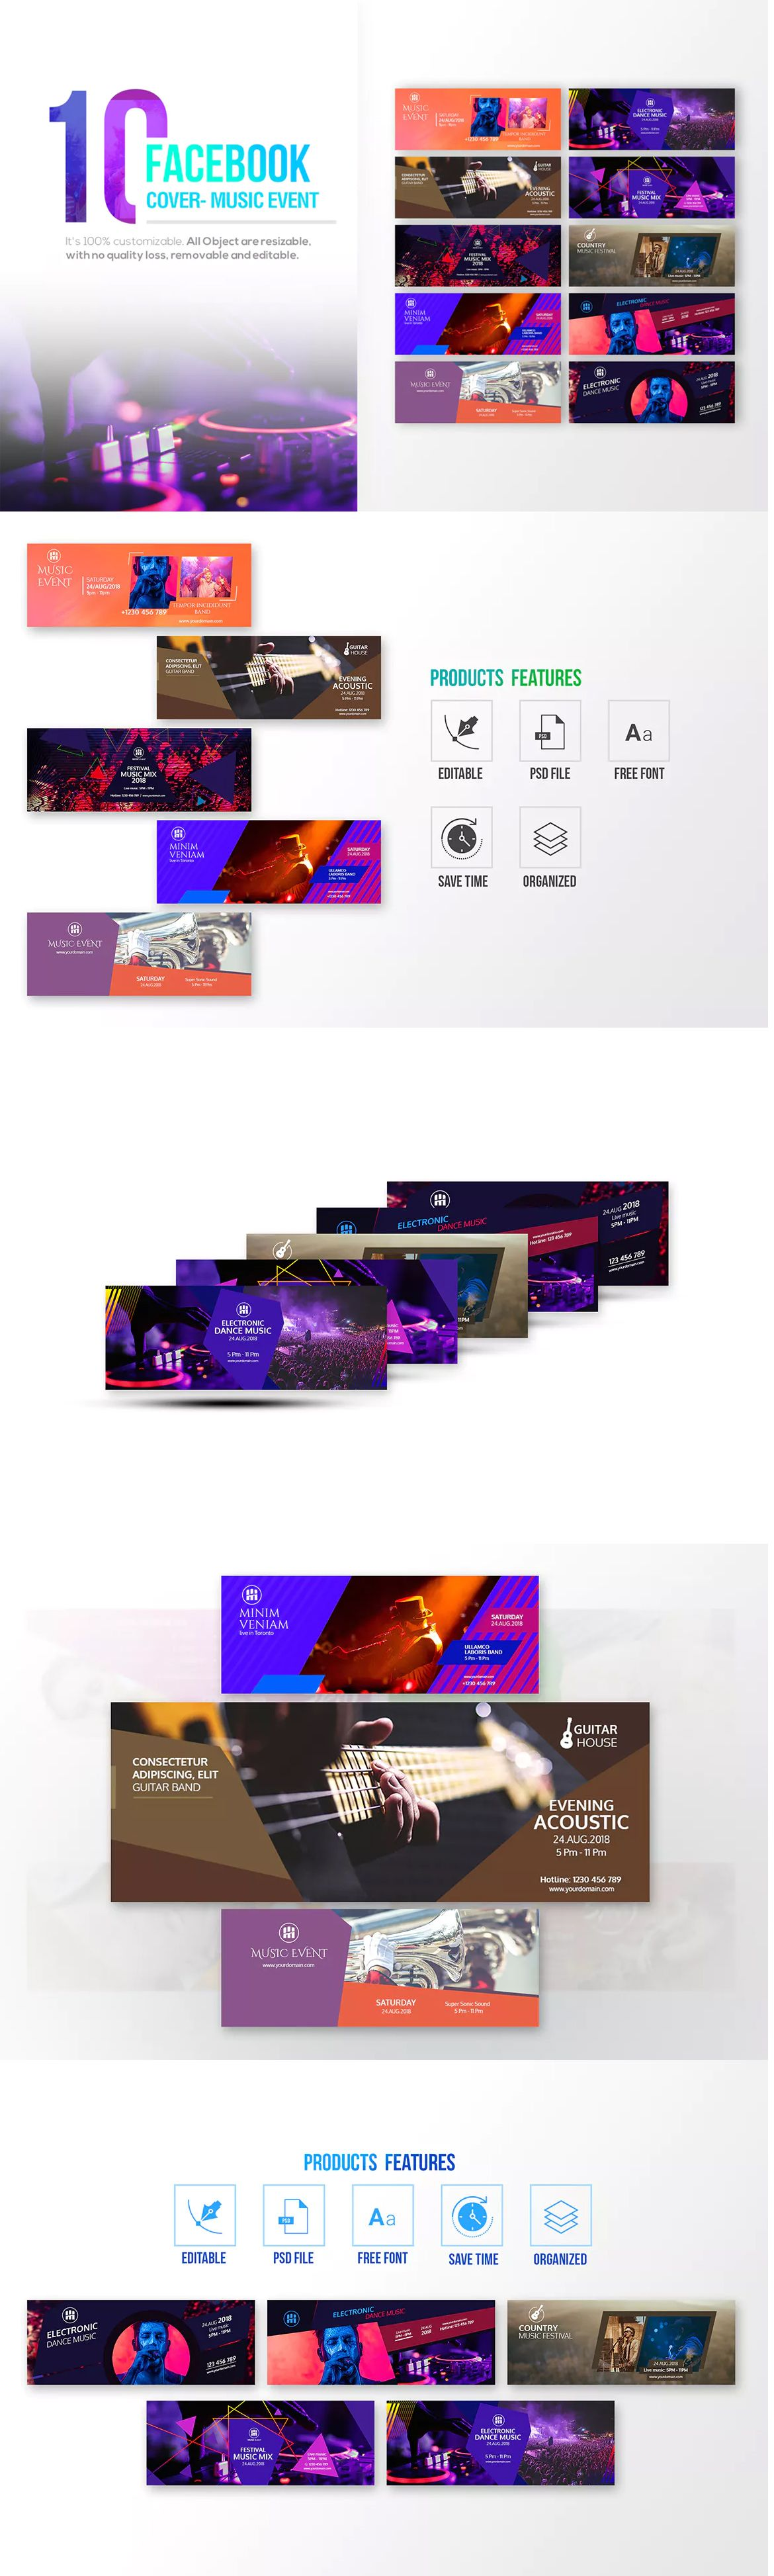 10 Facebook Cover - Music Event Template PSD | Facebook Cover ...